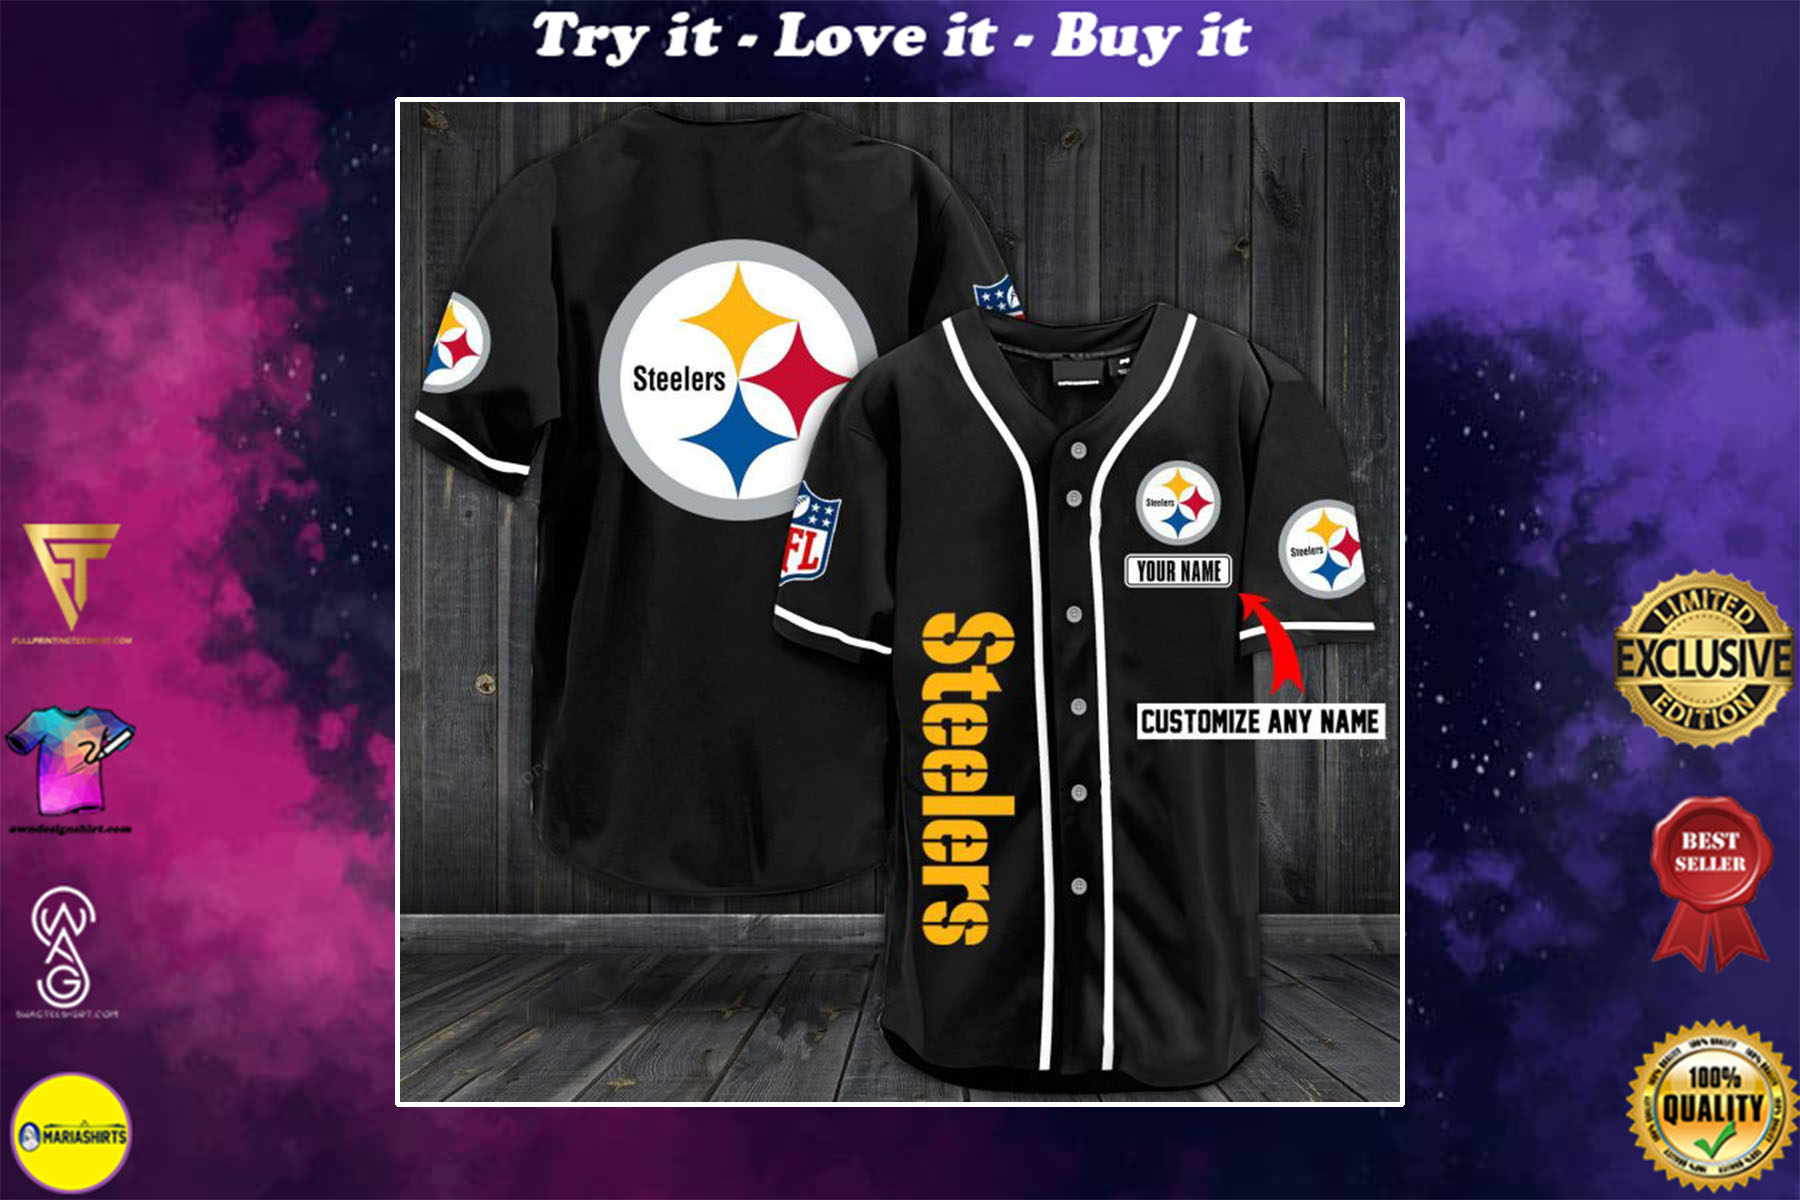 [special edition] custom name jersey pittsburgh steelers shirt - maria